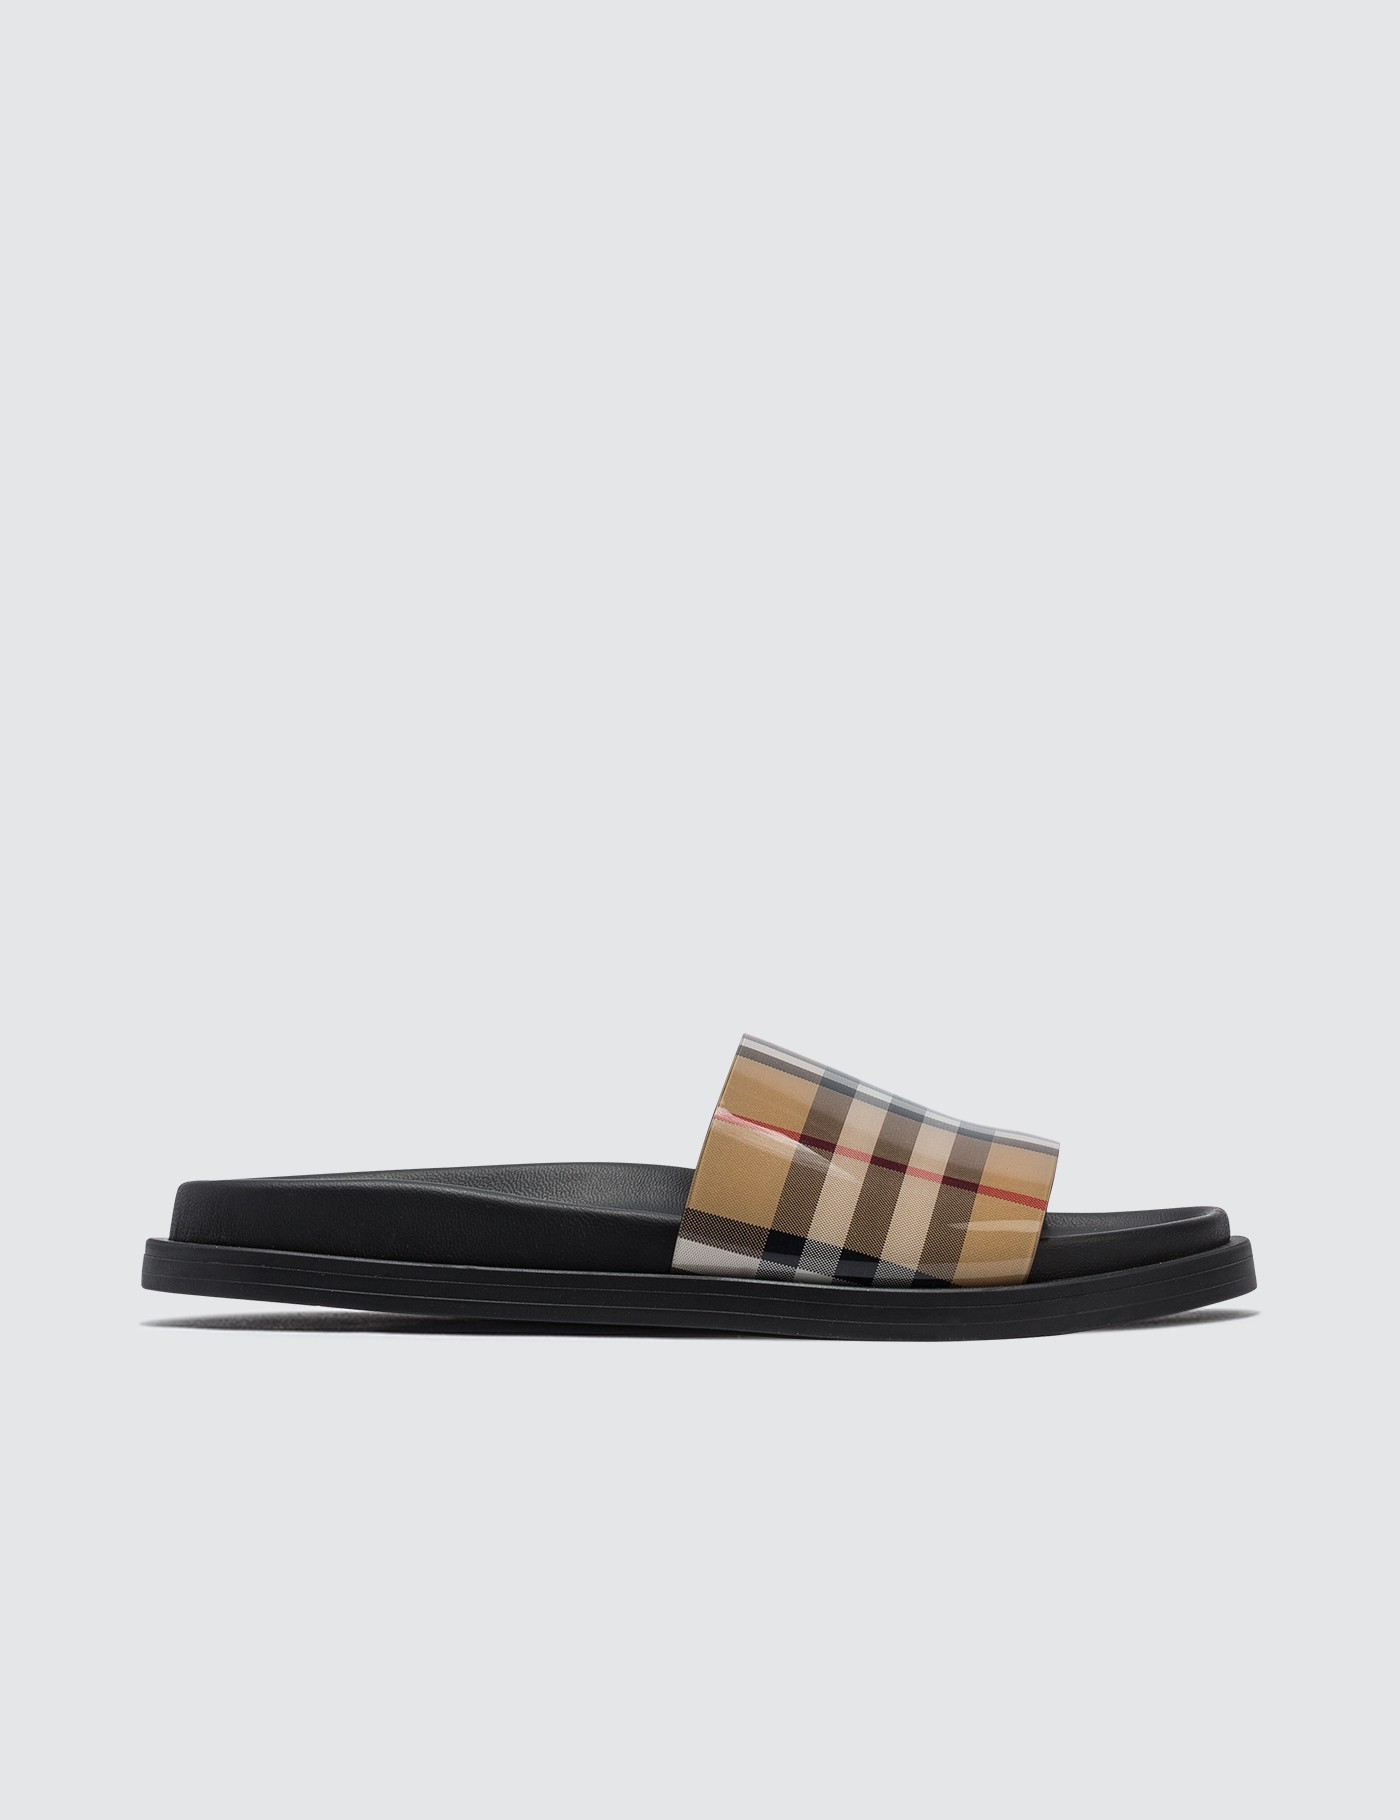 3dc190a8d Buy Original Burberry Vintage Check and Leather Slides at Indonesia ...